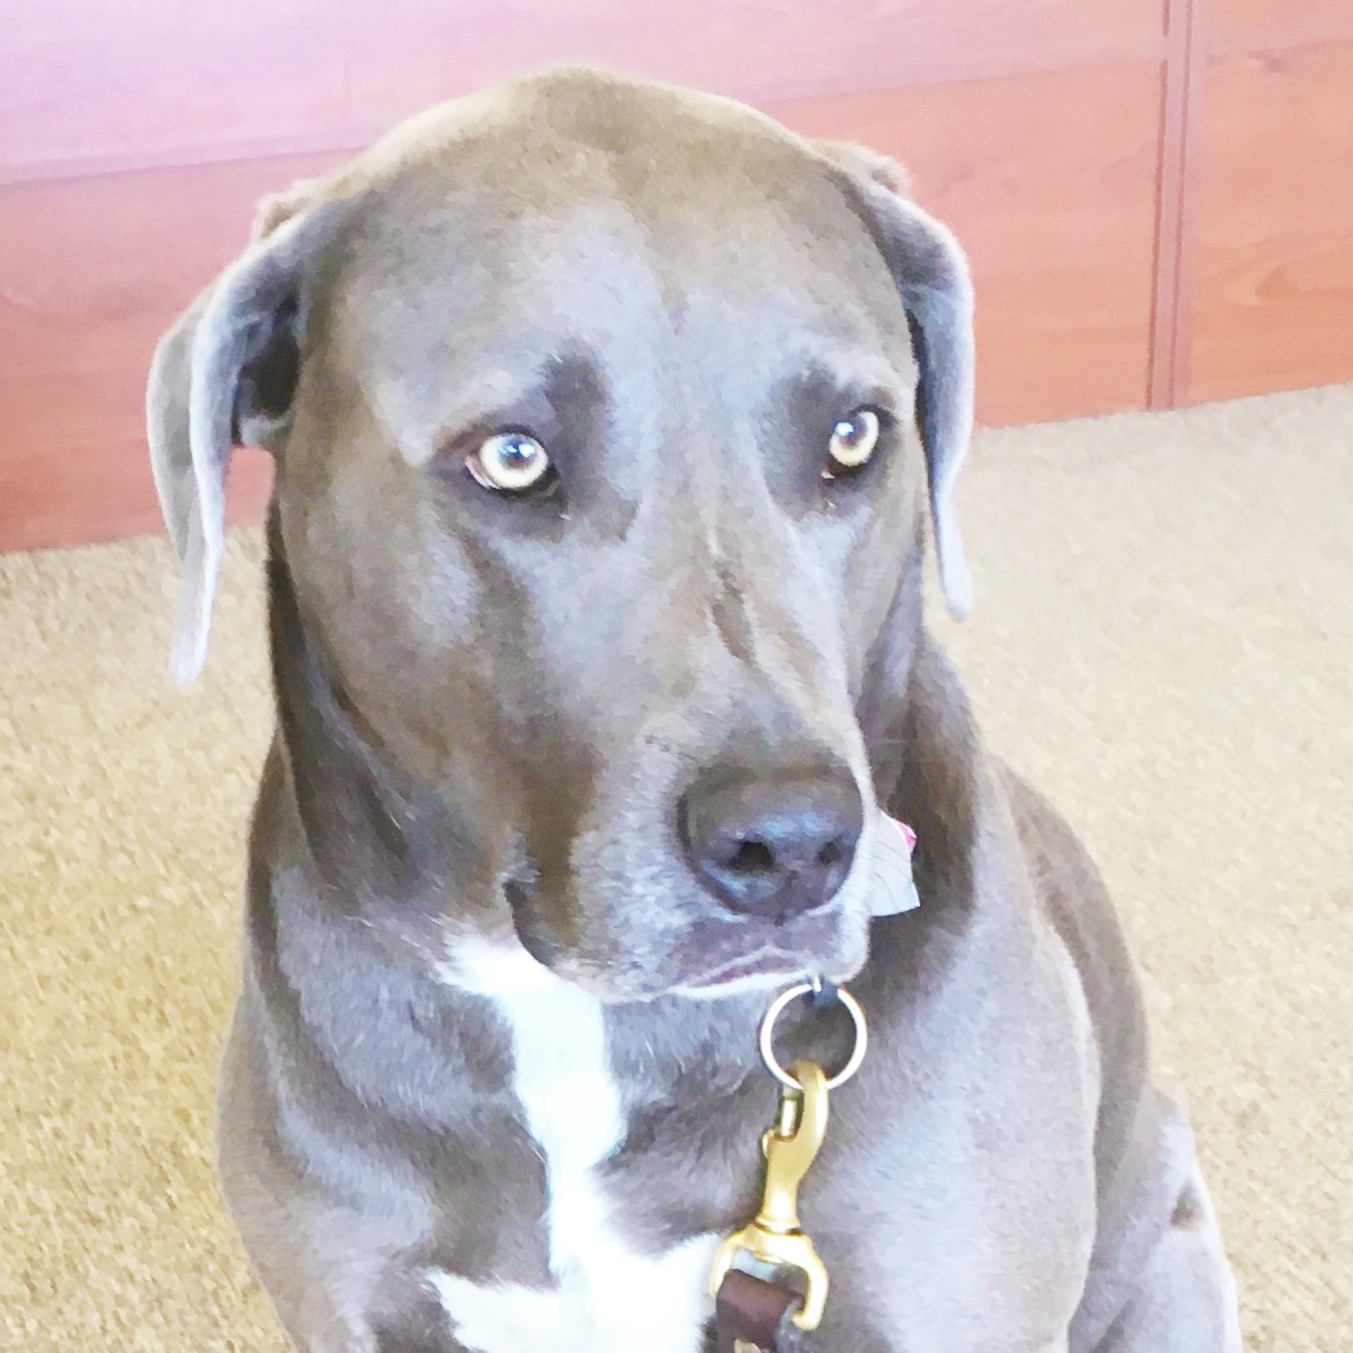 Vito, top dog - Just an all around good guy. Stop in to say hi to Vito - he'll be glad to see you!